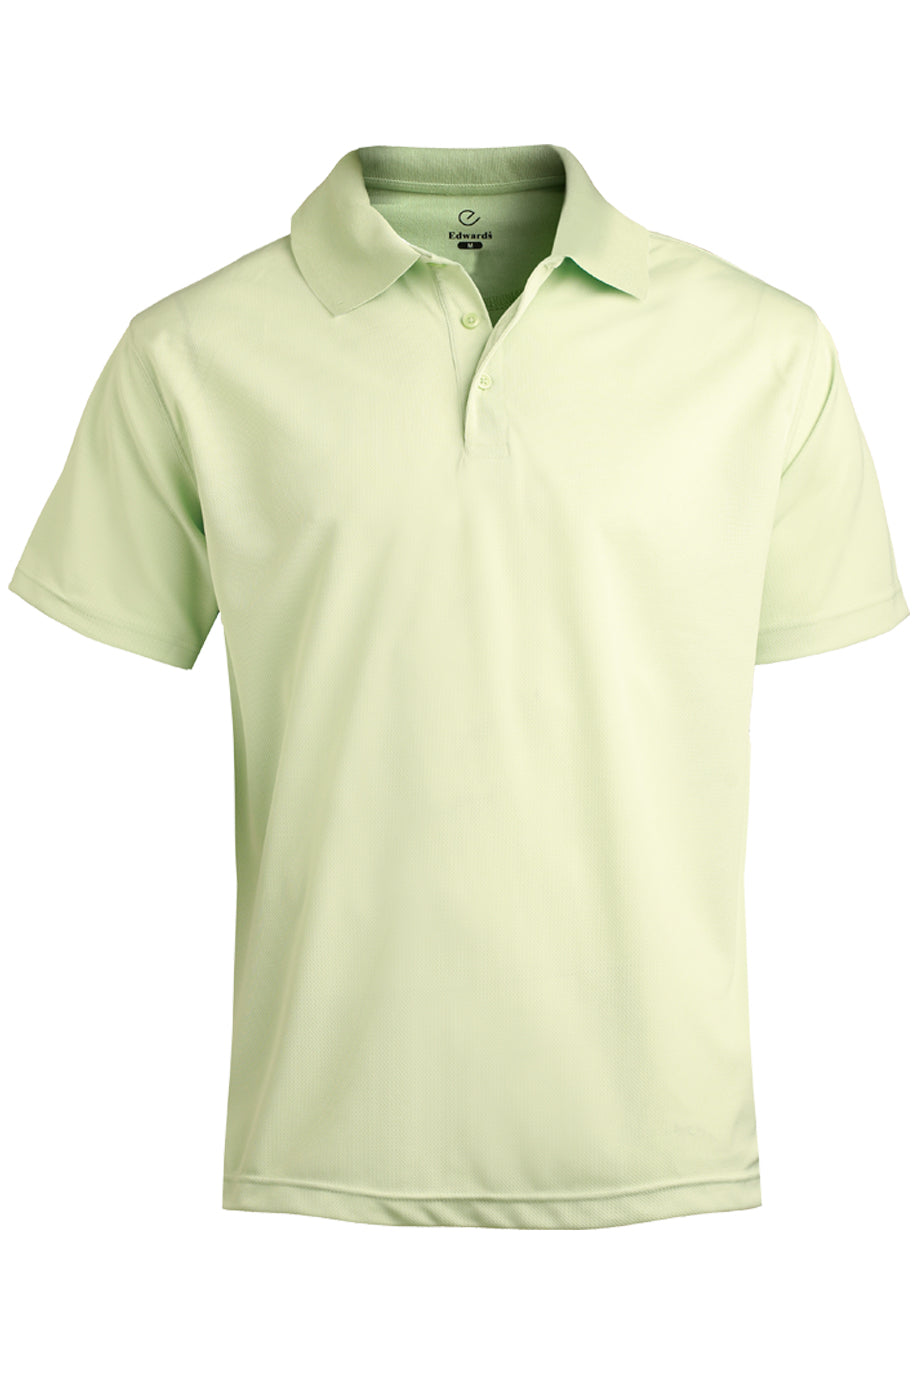 Cucumber Edwards Mens Hi-Performance Mesh Short Sleeve Polo